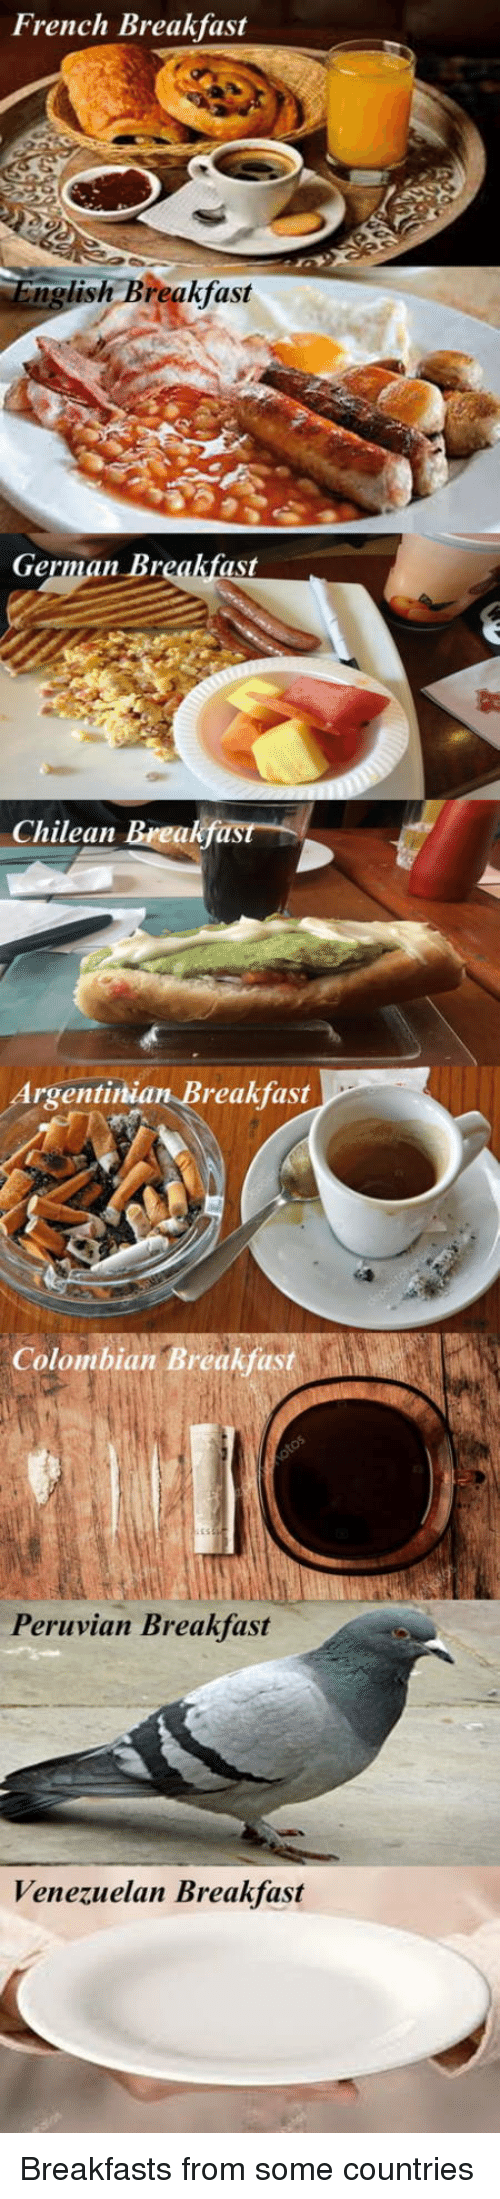 Breakfast, Chilean, and Argentinian: French Breakfast  ng  lish Breakfast  German Br  st  Chilean Breakfast  Argentinian Breakfast  Colombian Breakfast  Peruvian Breakfast  Venezuelan Breakfast Breakfasts from some countries